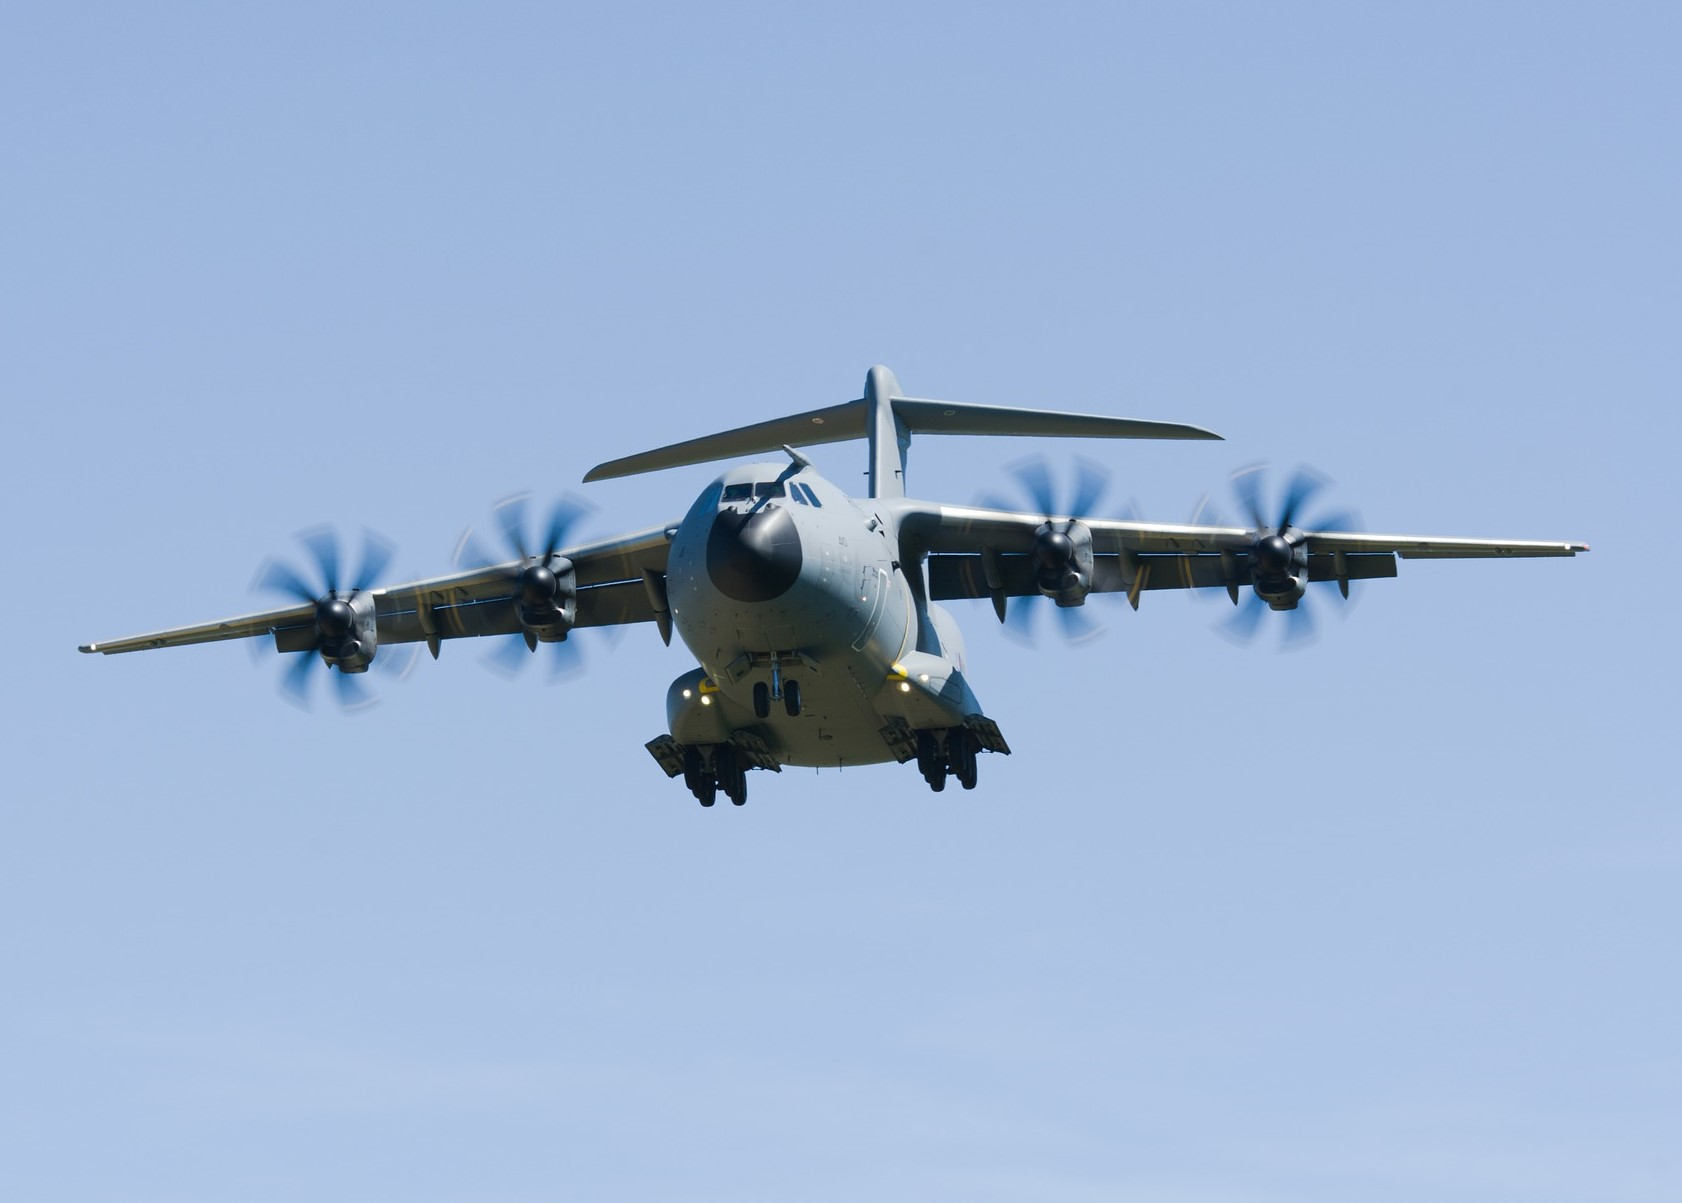 This is why so many RAF planes have been spotted during the coronavirus lockdown